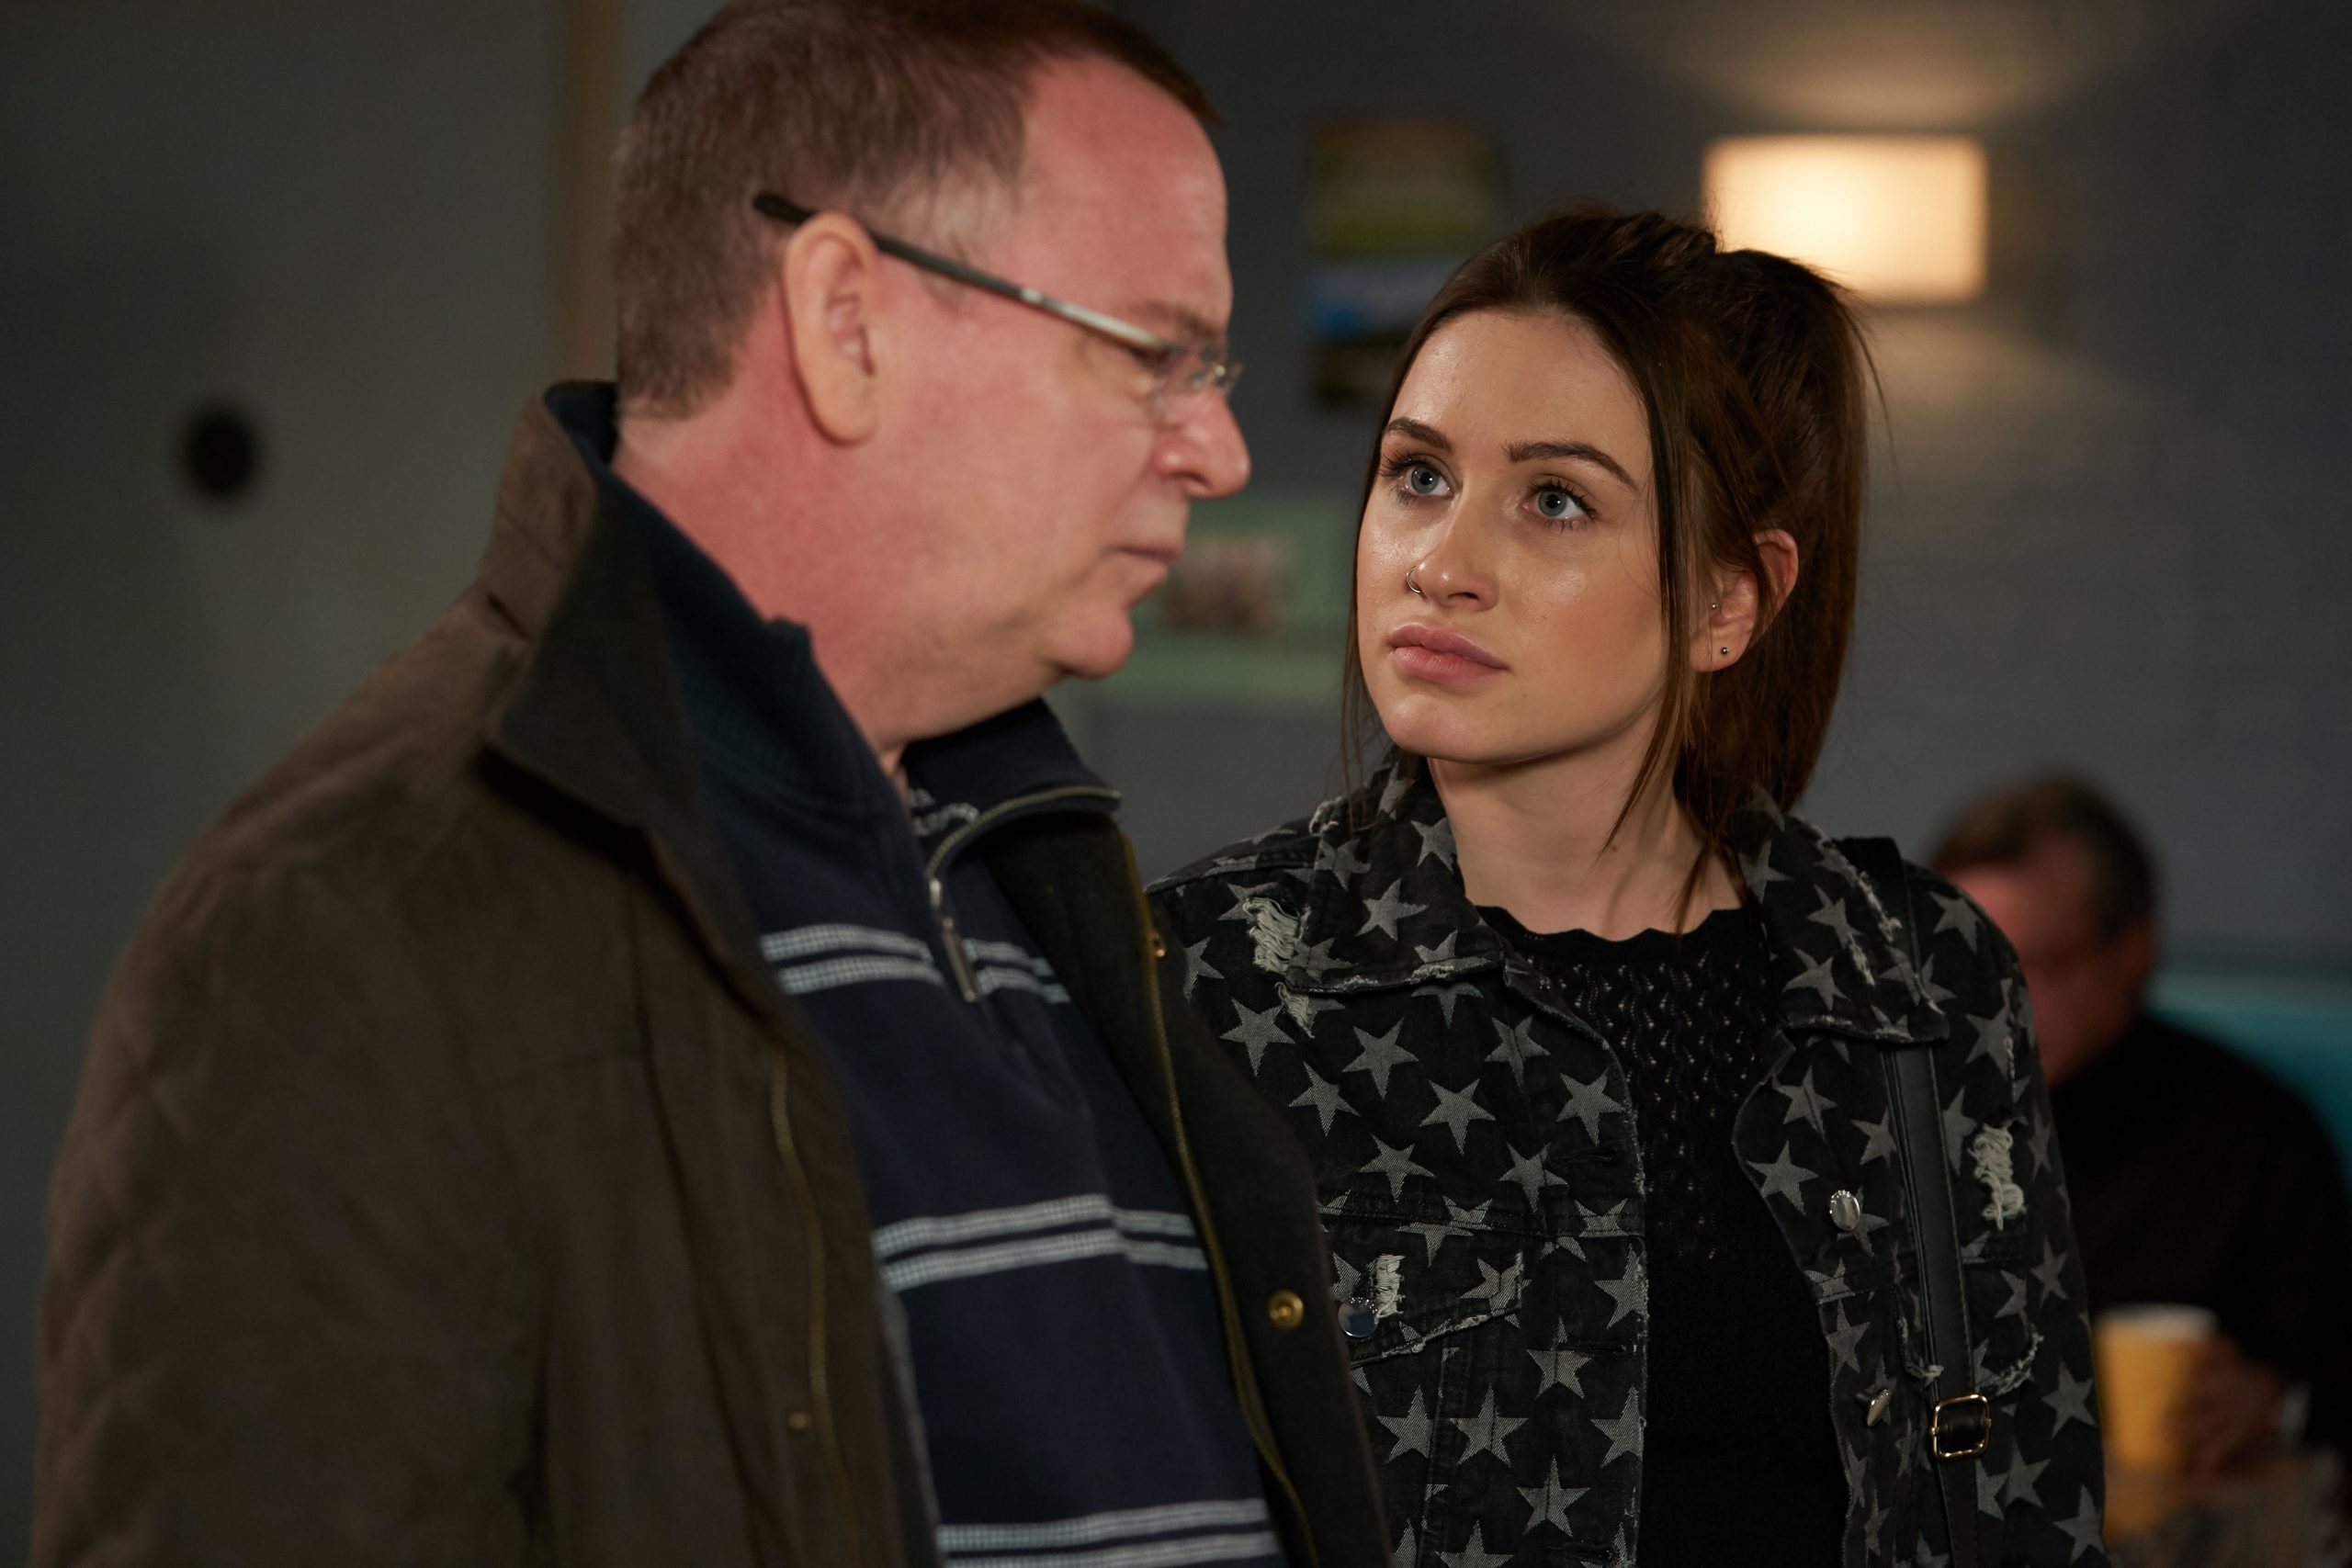 Ian and Dotty EastEnders